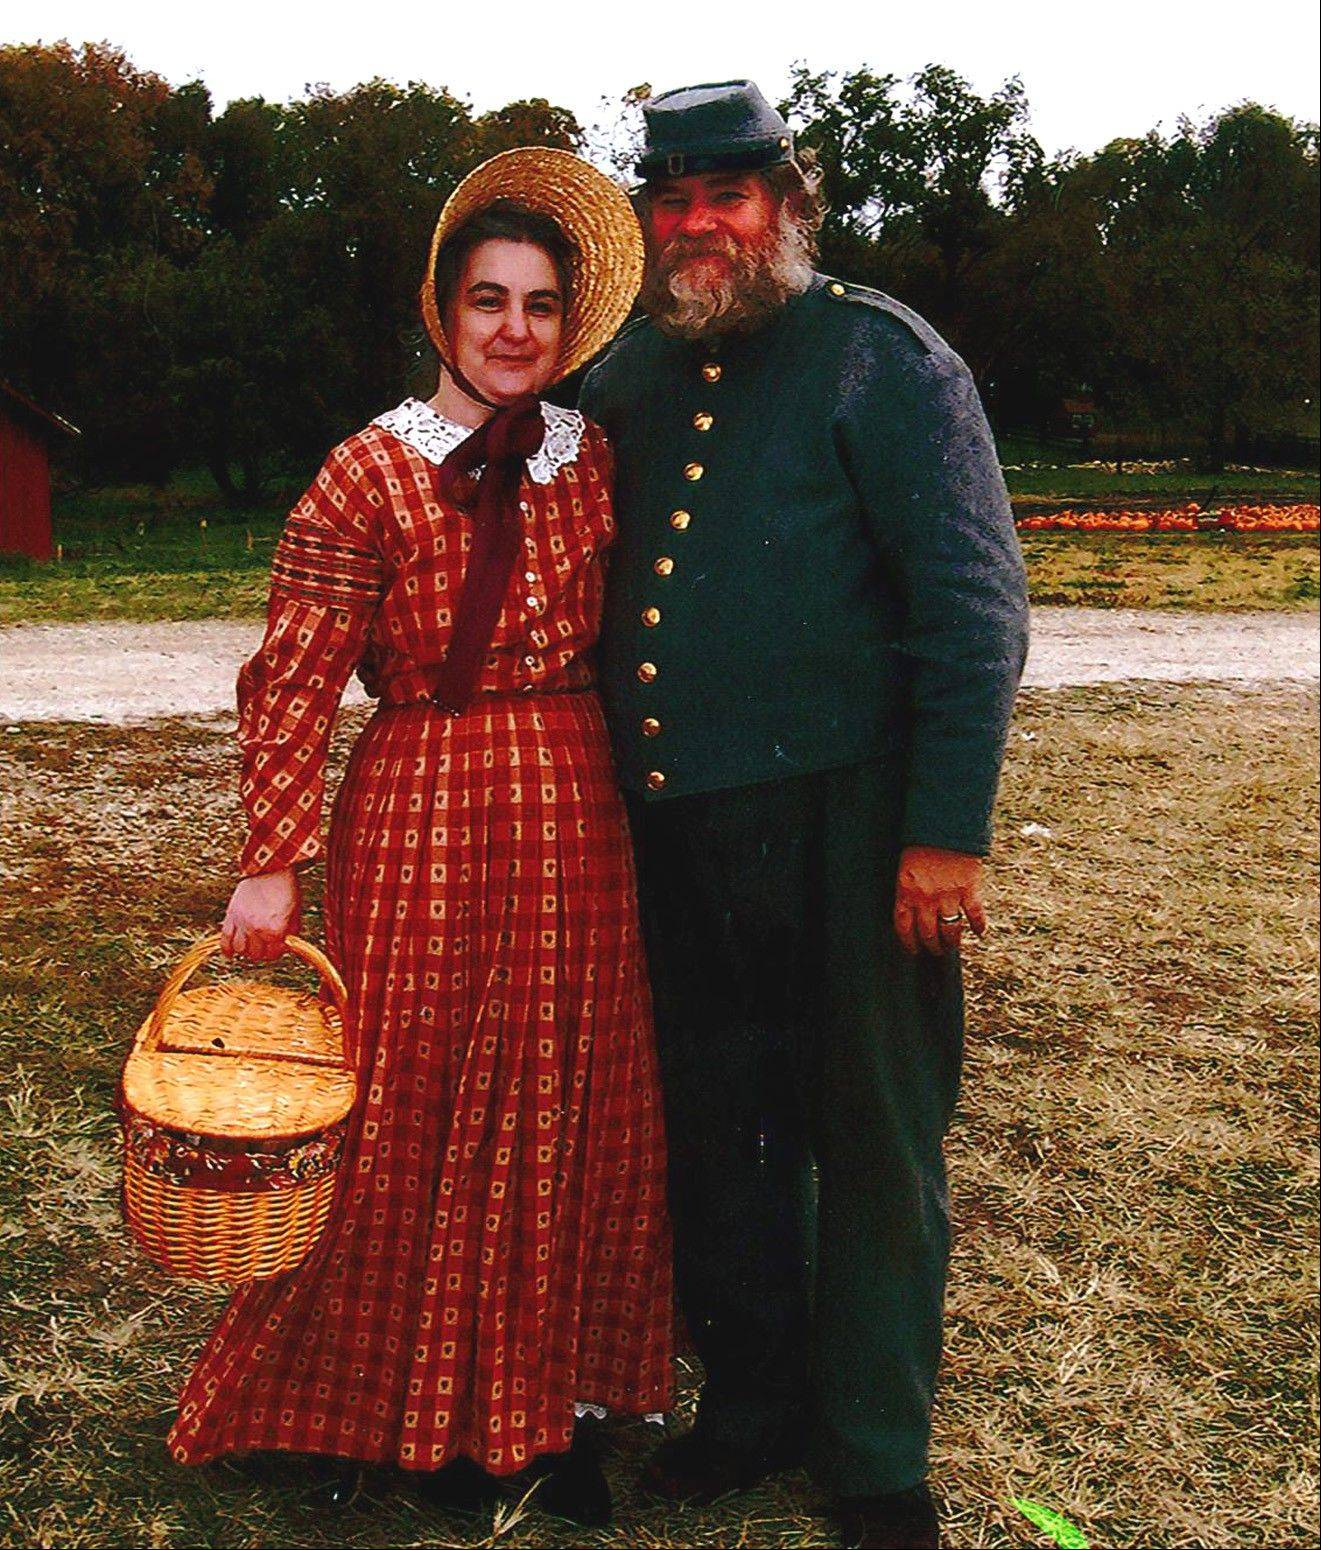 Retiree Pat Healy, left, keeps busy with re-enacting the Civil War with her husband, Rich Healy, right, with the 154th Tennessee Civil War re-enactment group. The pair re-enact Malinda Brunetta Moon, and her husband Larking Moon, an actual member of the regiment 150 years ago.